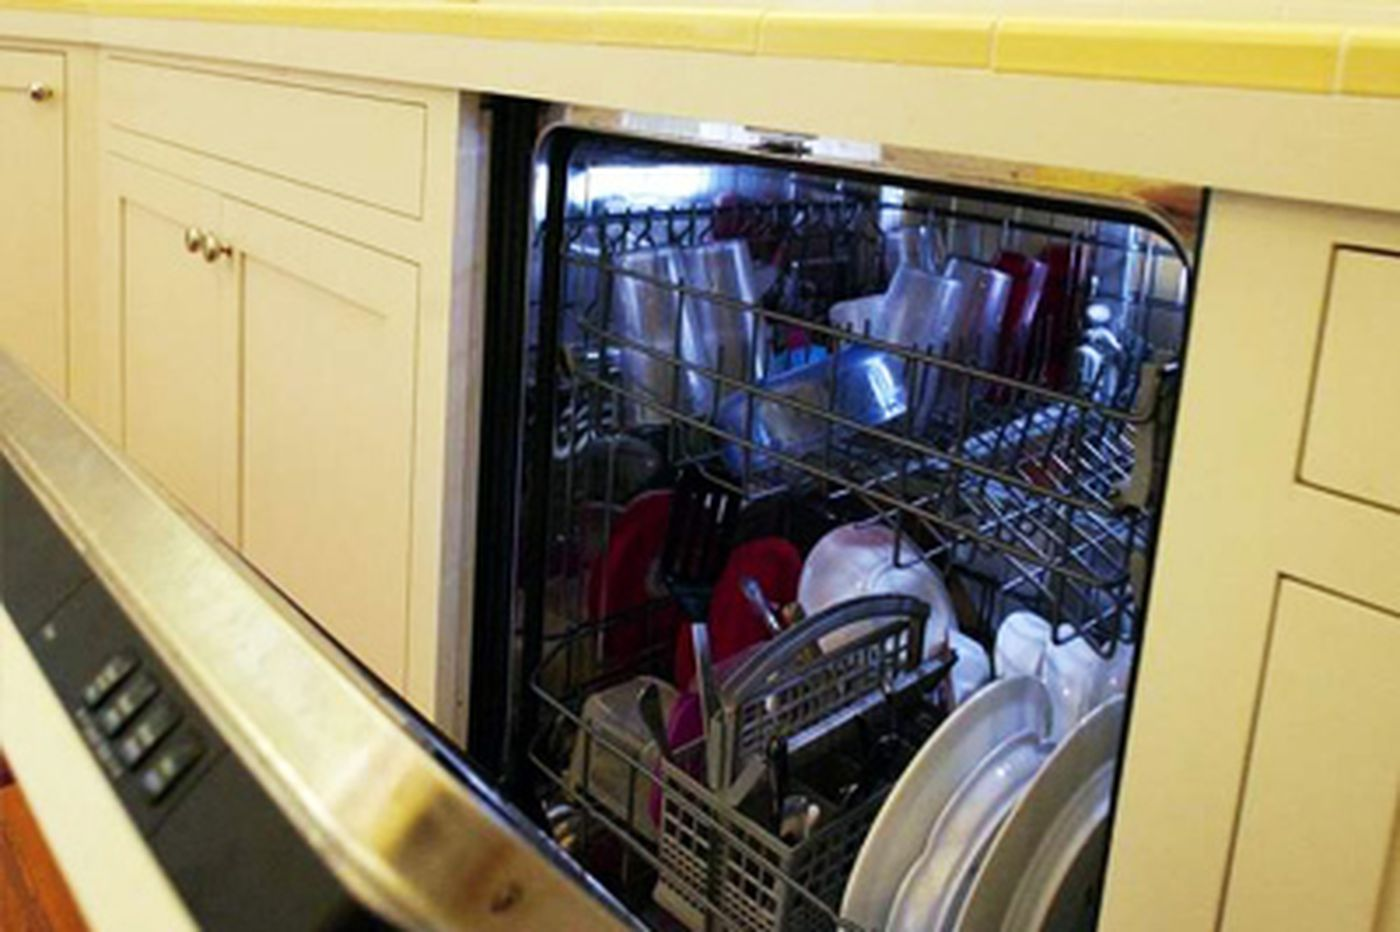 Readers deal with rusting dishwasher racks